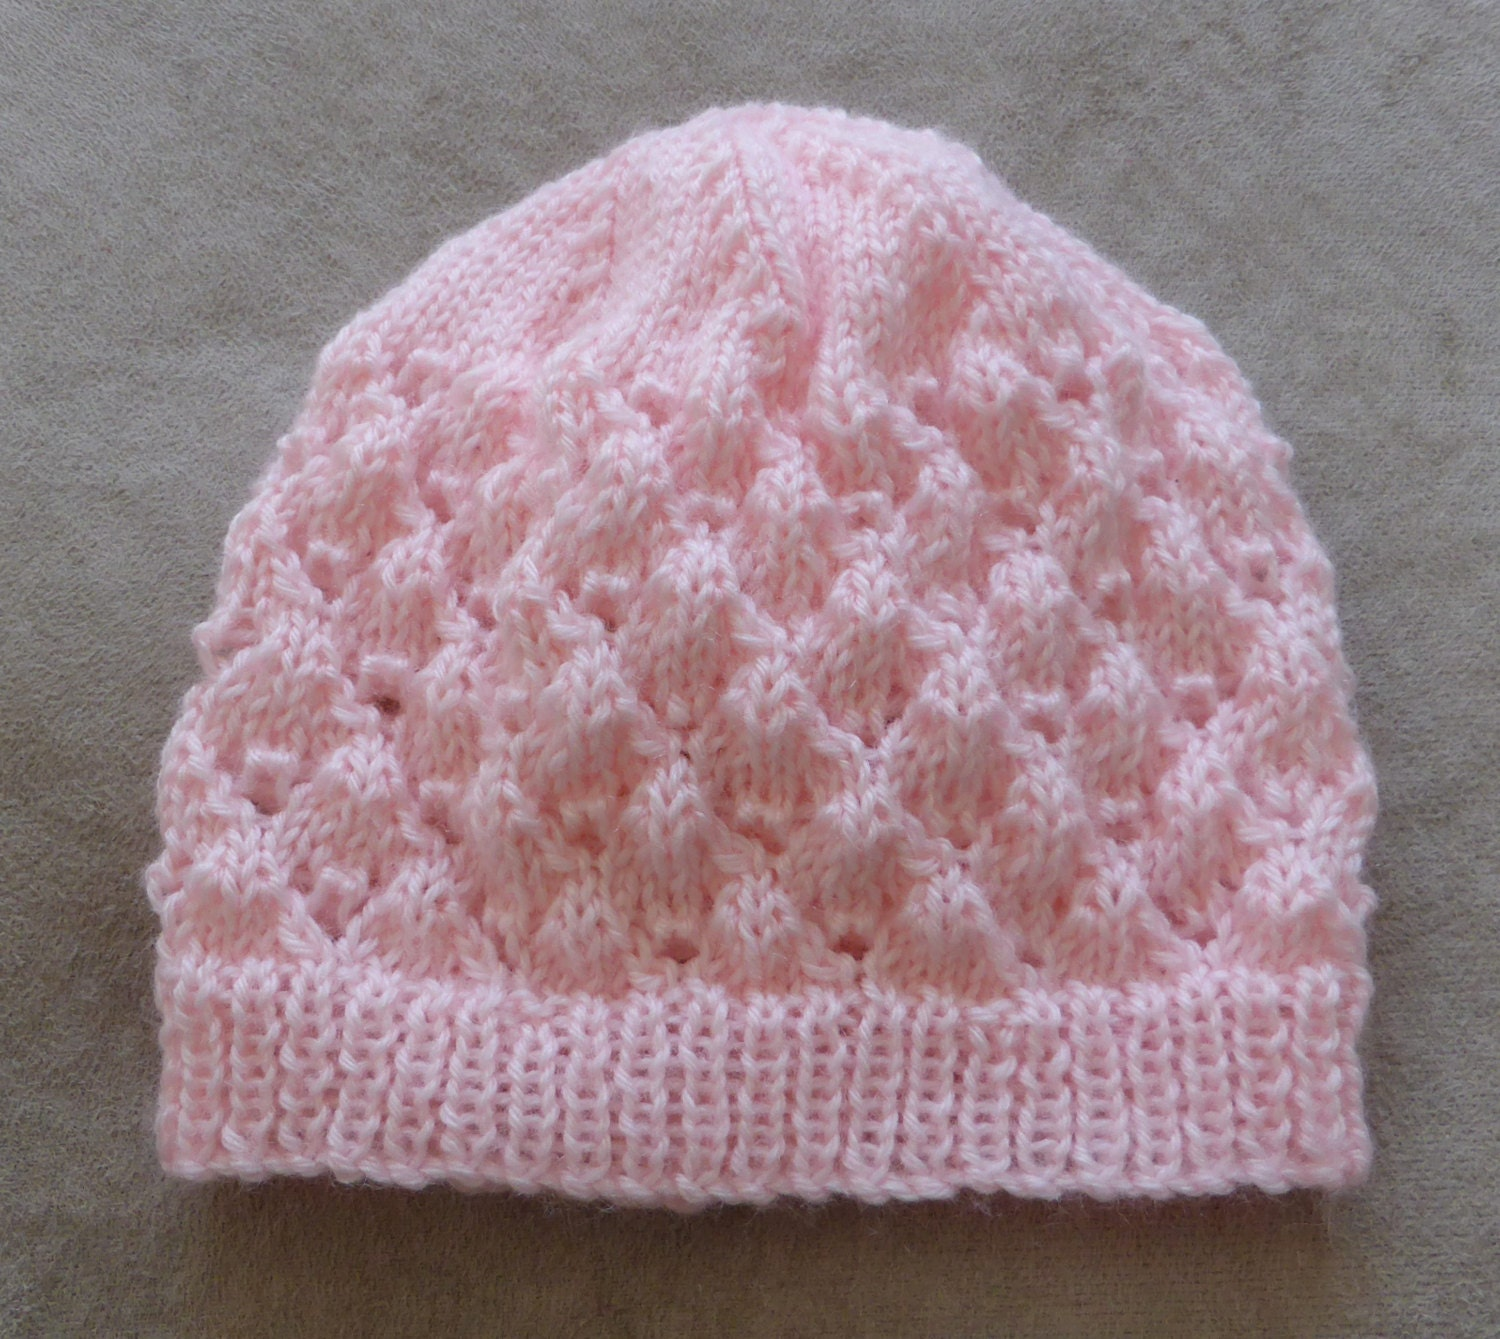 Baby Beanie Knit Pattern : Babies 4ply lace Beanie PDF knitting pattern Molly